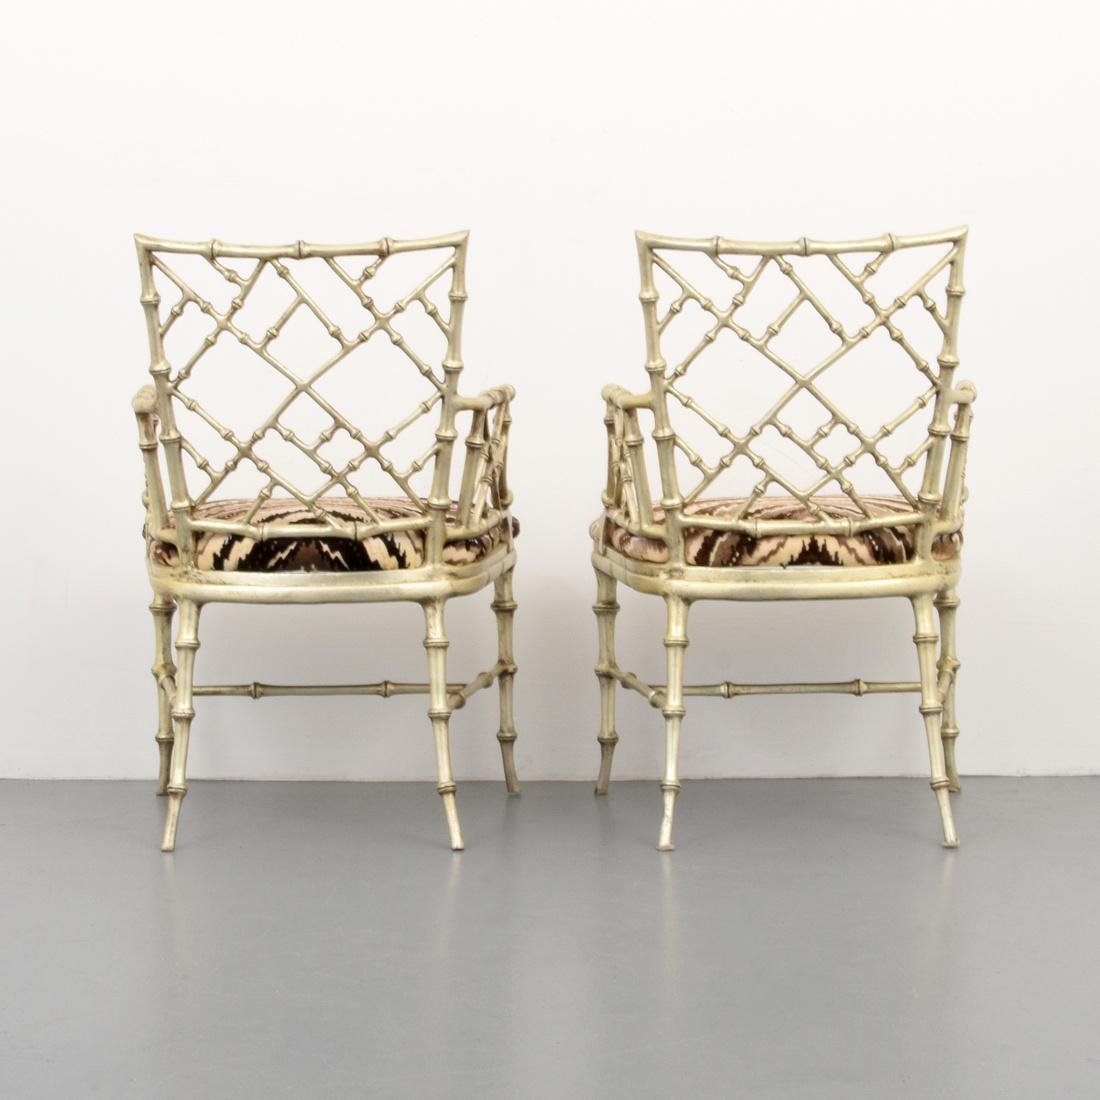 Pair of Phyllis Morris Originals Faux Bamboo Arm Chairs - 4